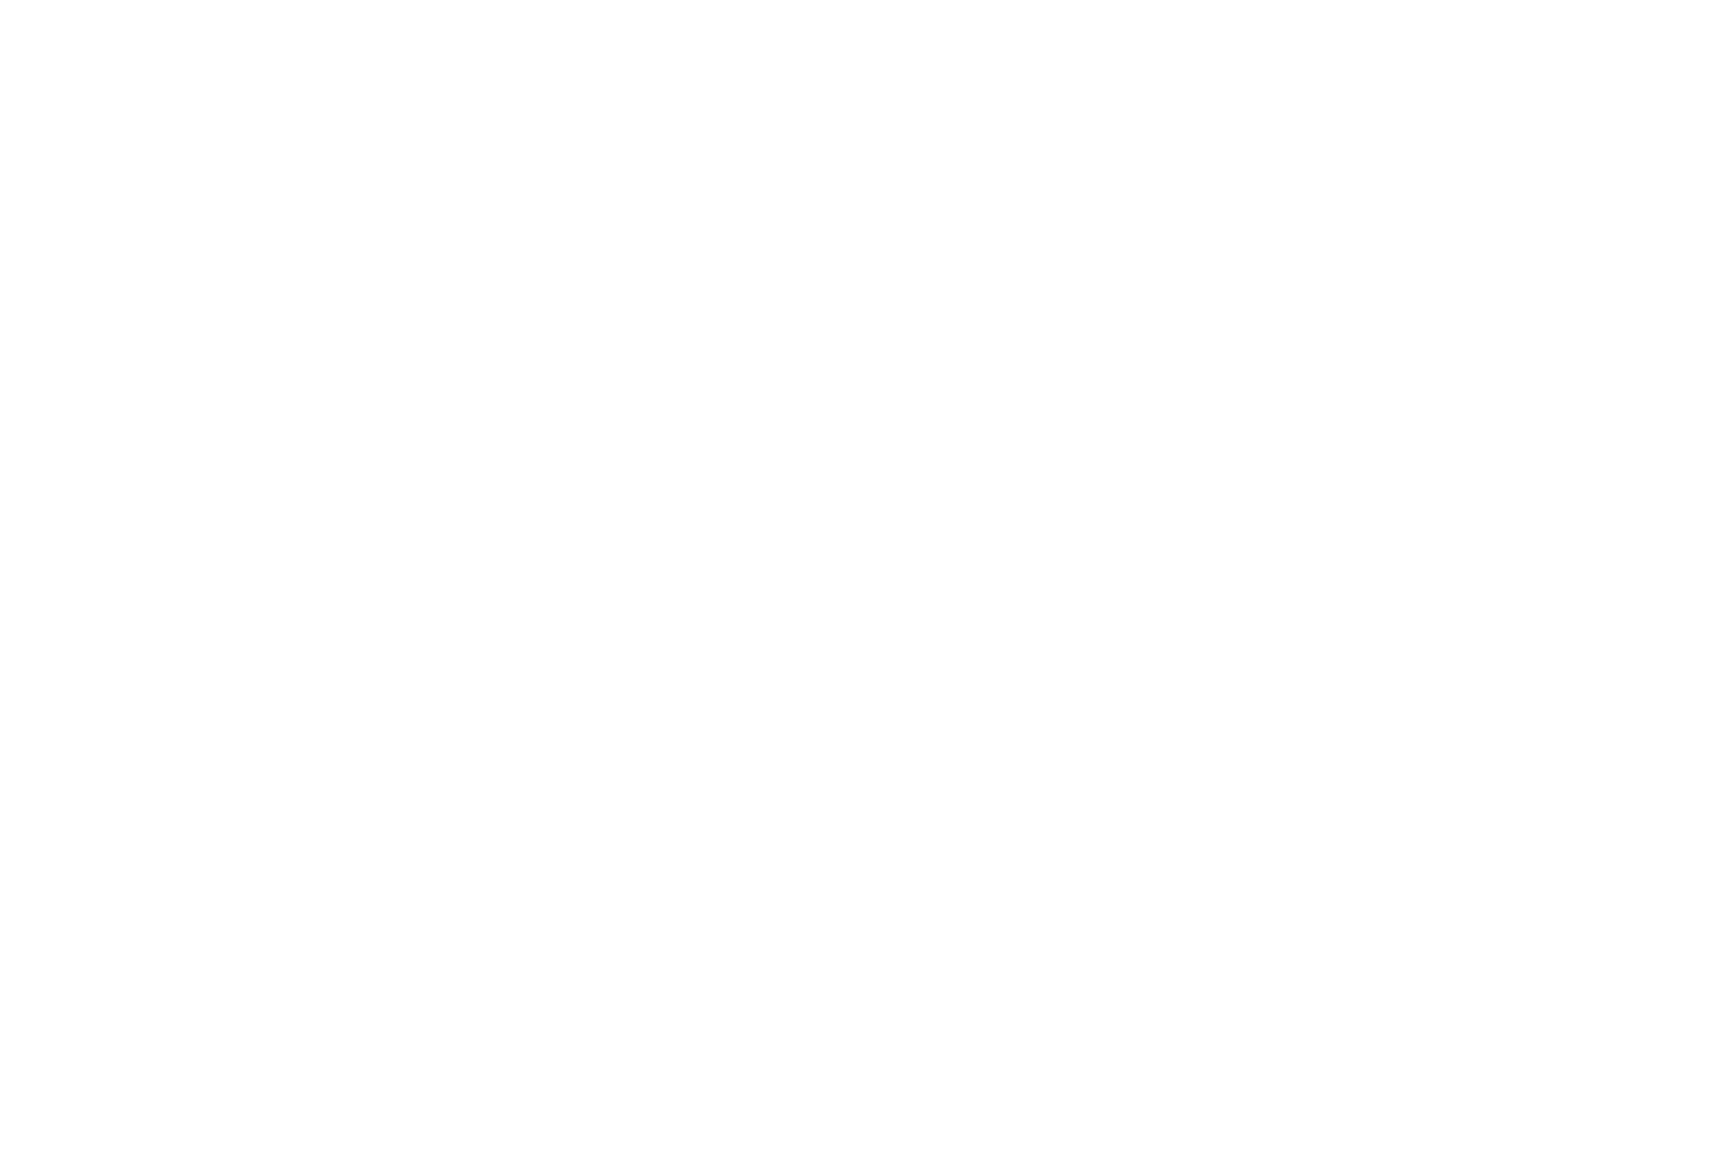 WINNER DEBUT FILMMAKER - Calcutta International Cult Film Festival - 2018 (1).png